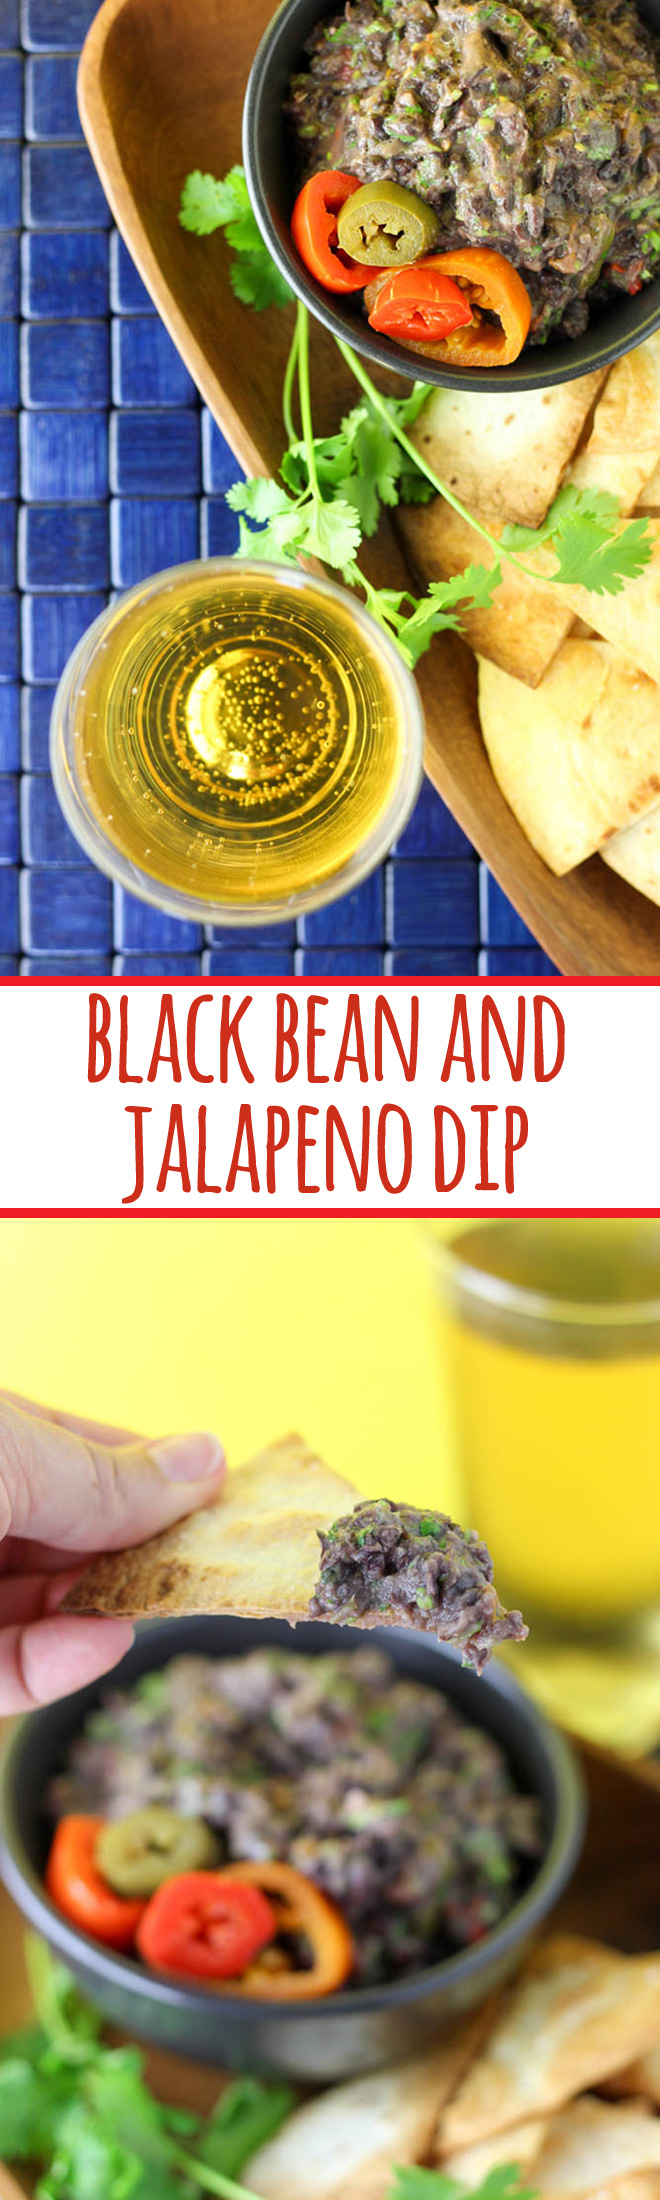 Mexican inspired black bean and jalapeno dip is packed with flavour, perfect for parties and pot lucks, and right at home with an ice cold beer.